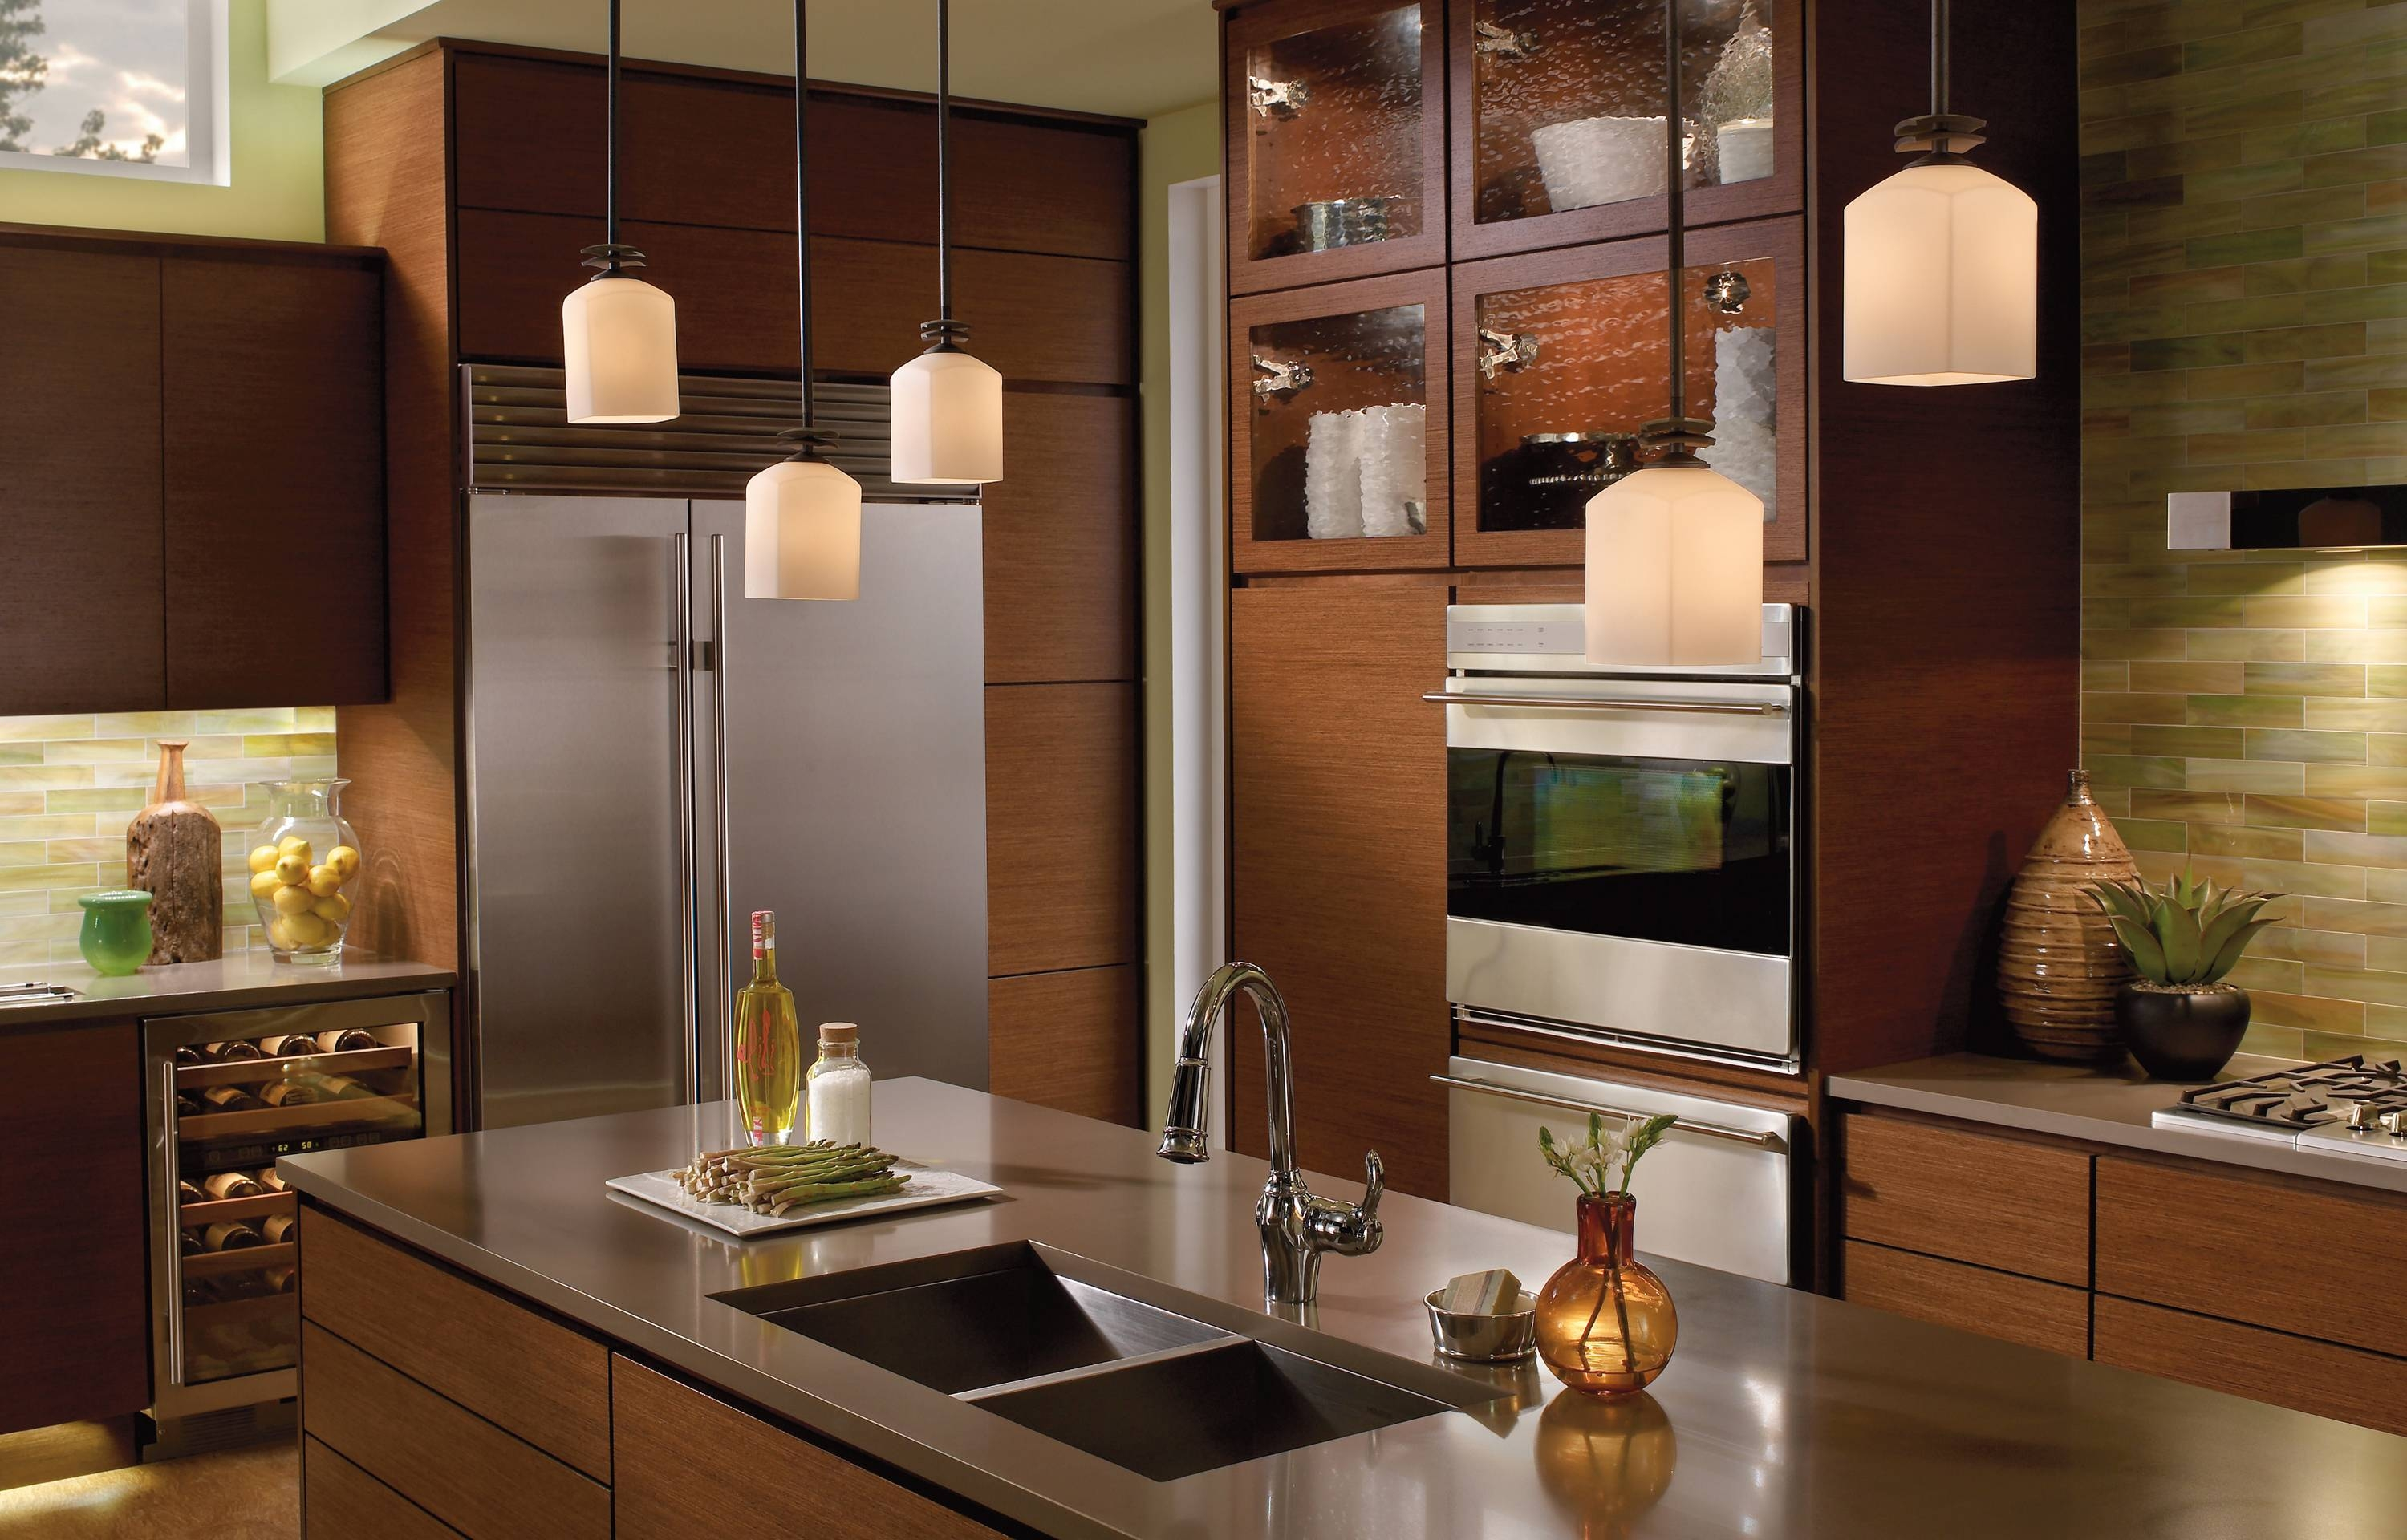 Kitchen : Cute Restaurant Pendant Lighting 909 Within Modern Pertaining To Orange Pendant Lights For Kitchen (View 4 of 15)